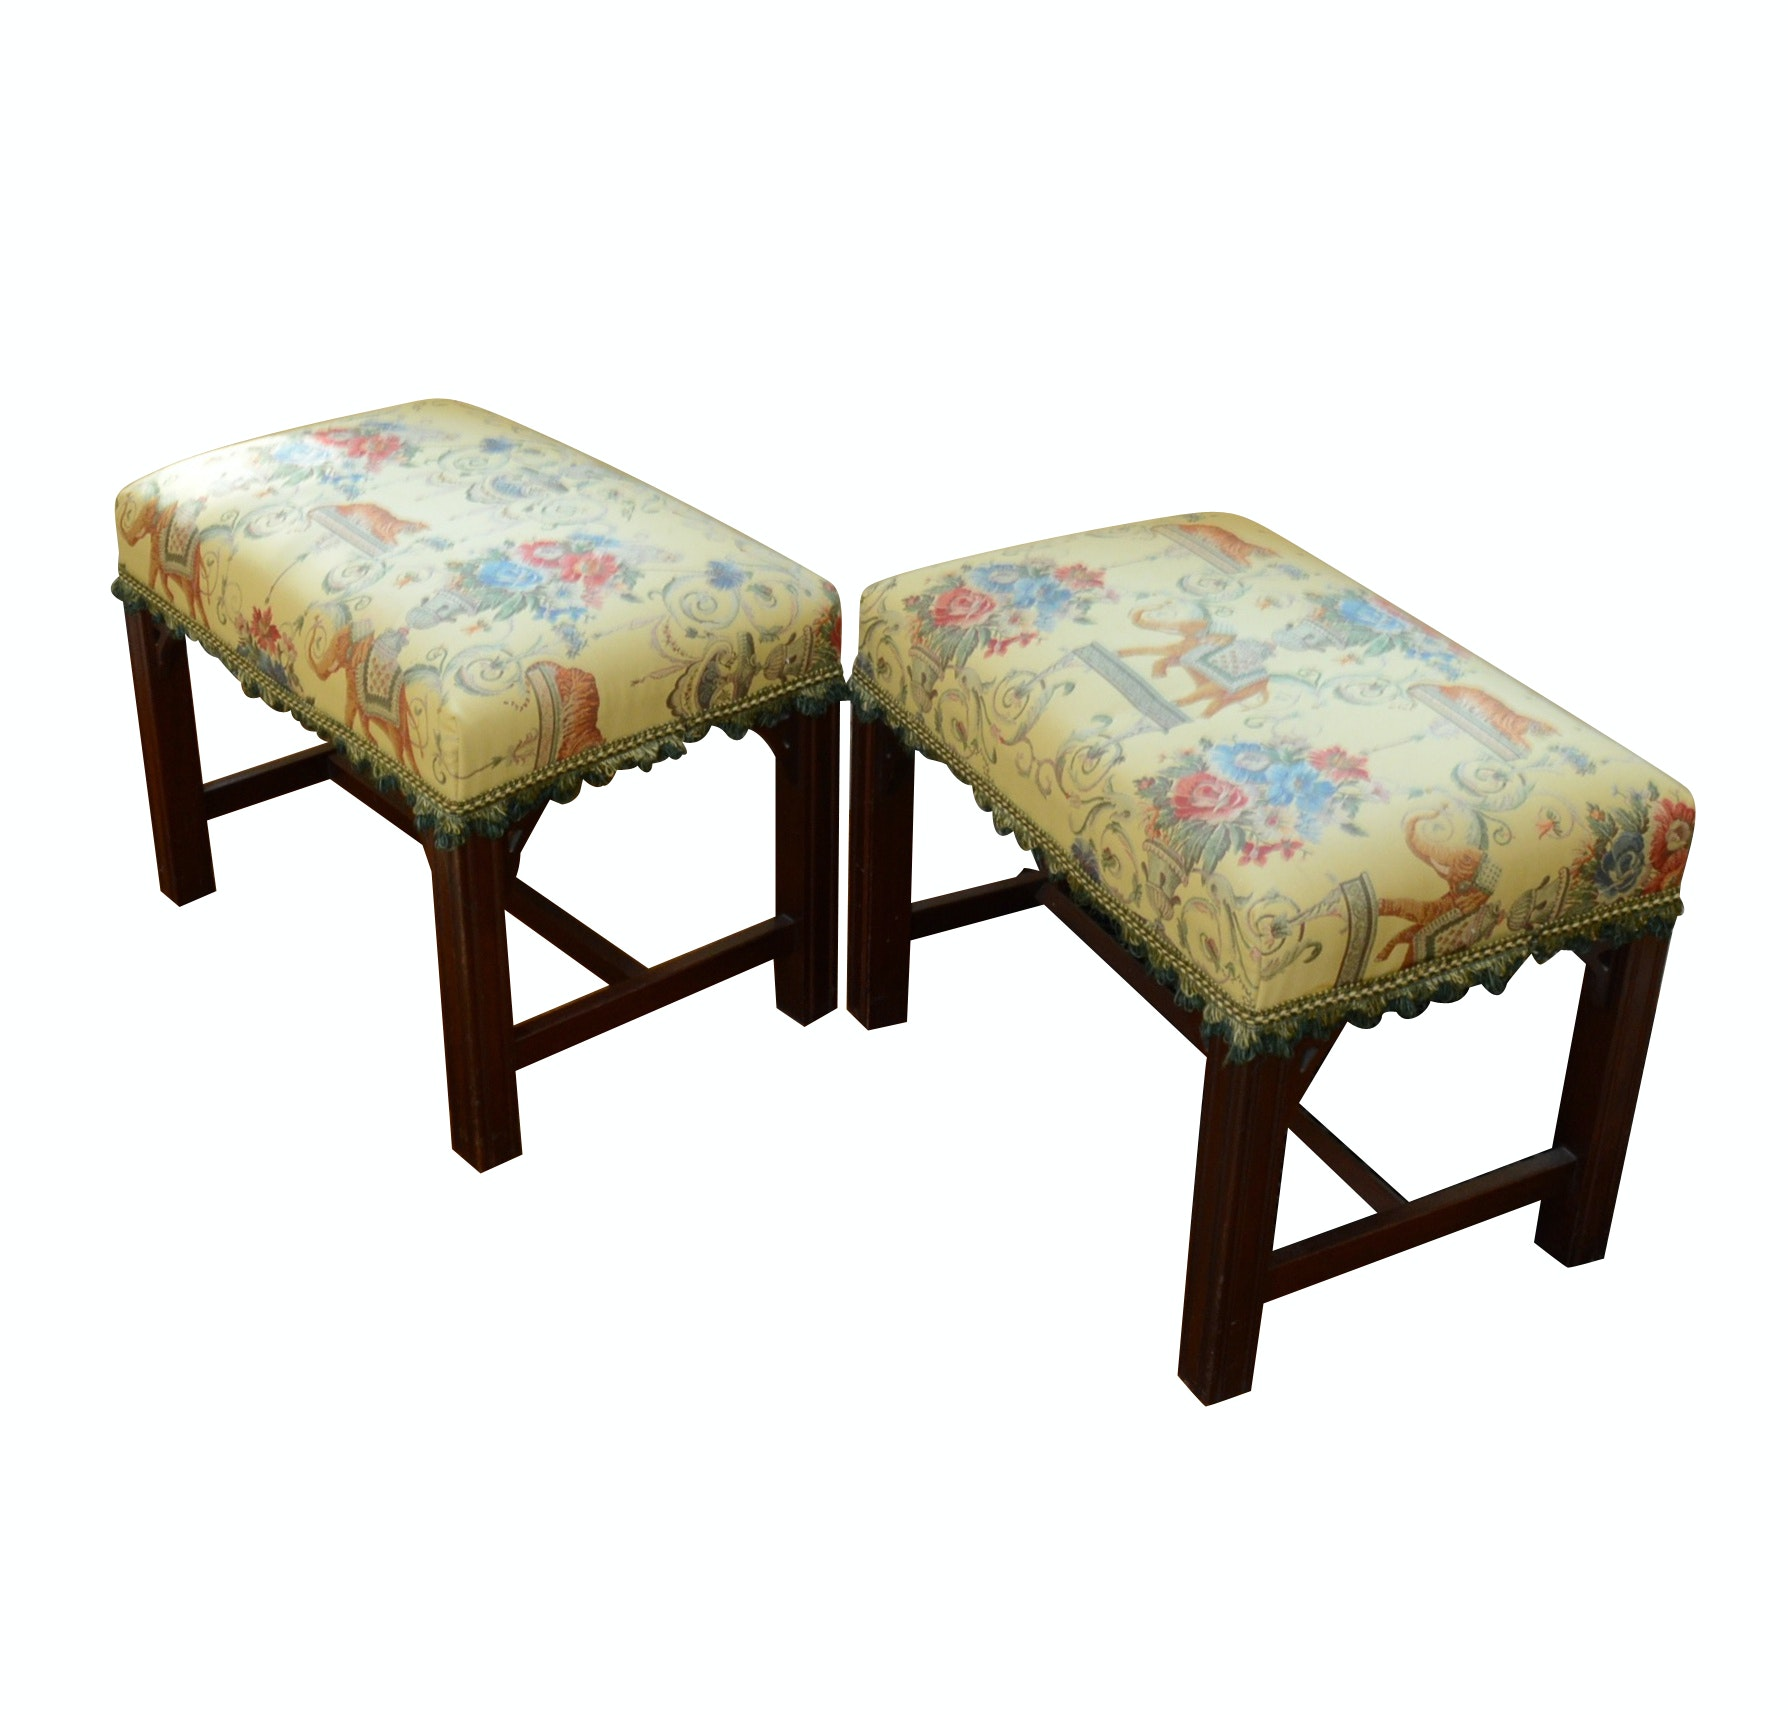 Pair of Custom Upholstered Benches